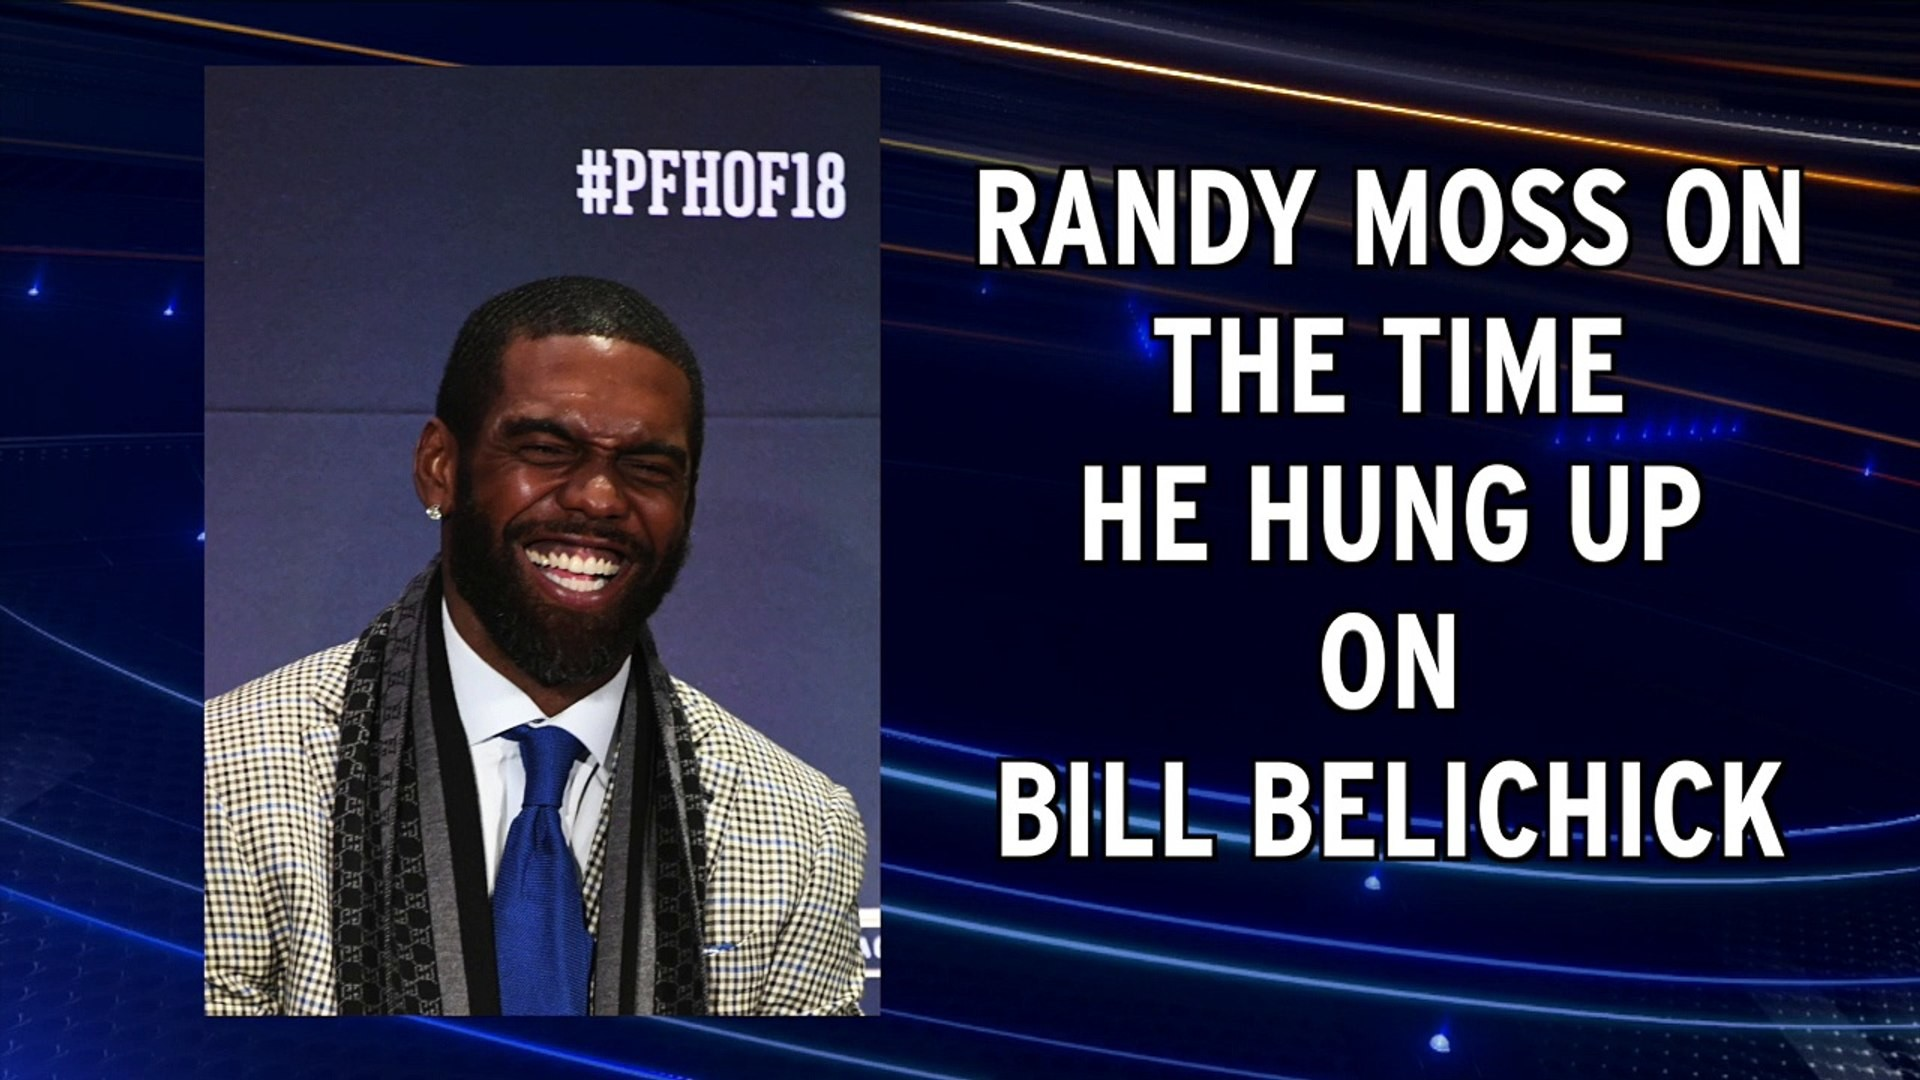 1920x1080 Randy Moss tells story about hanging up on Bill Belichick - video  dailymotion